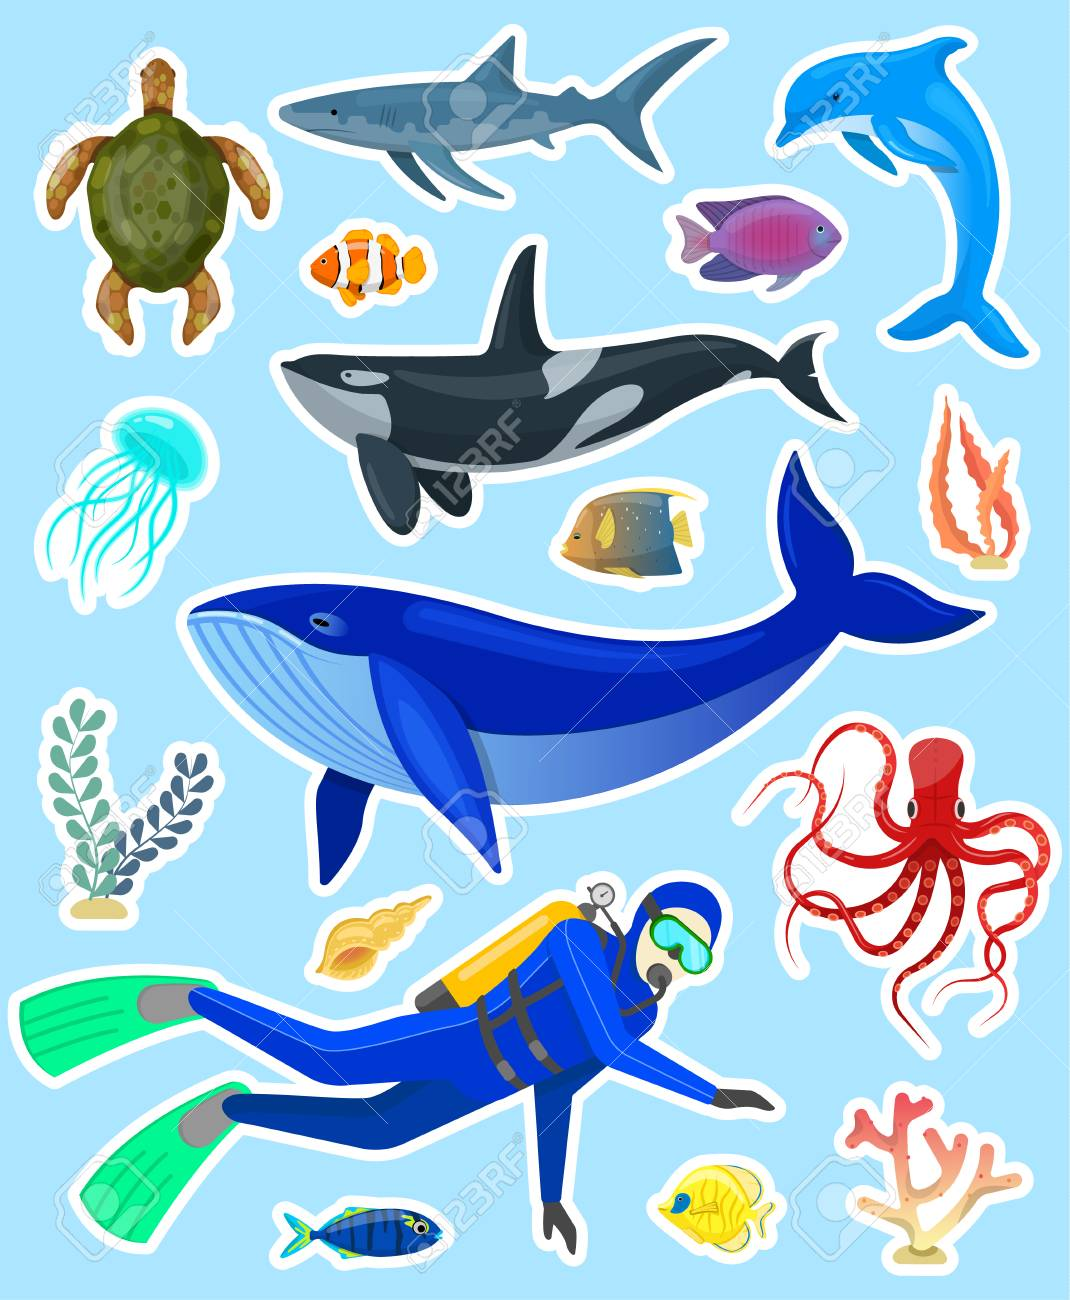 Image of: Book Set Of Stickers With Ocean Animals And Divers On Blue Backgroundvector Illustration Stockfoto 123rf Set Of Stickers With Ocean Animals And Divers On Blue Background